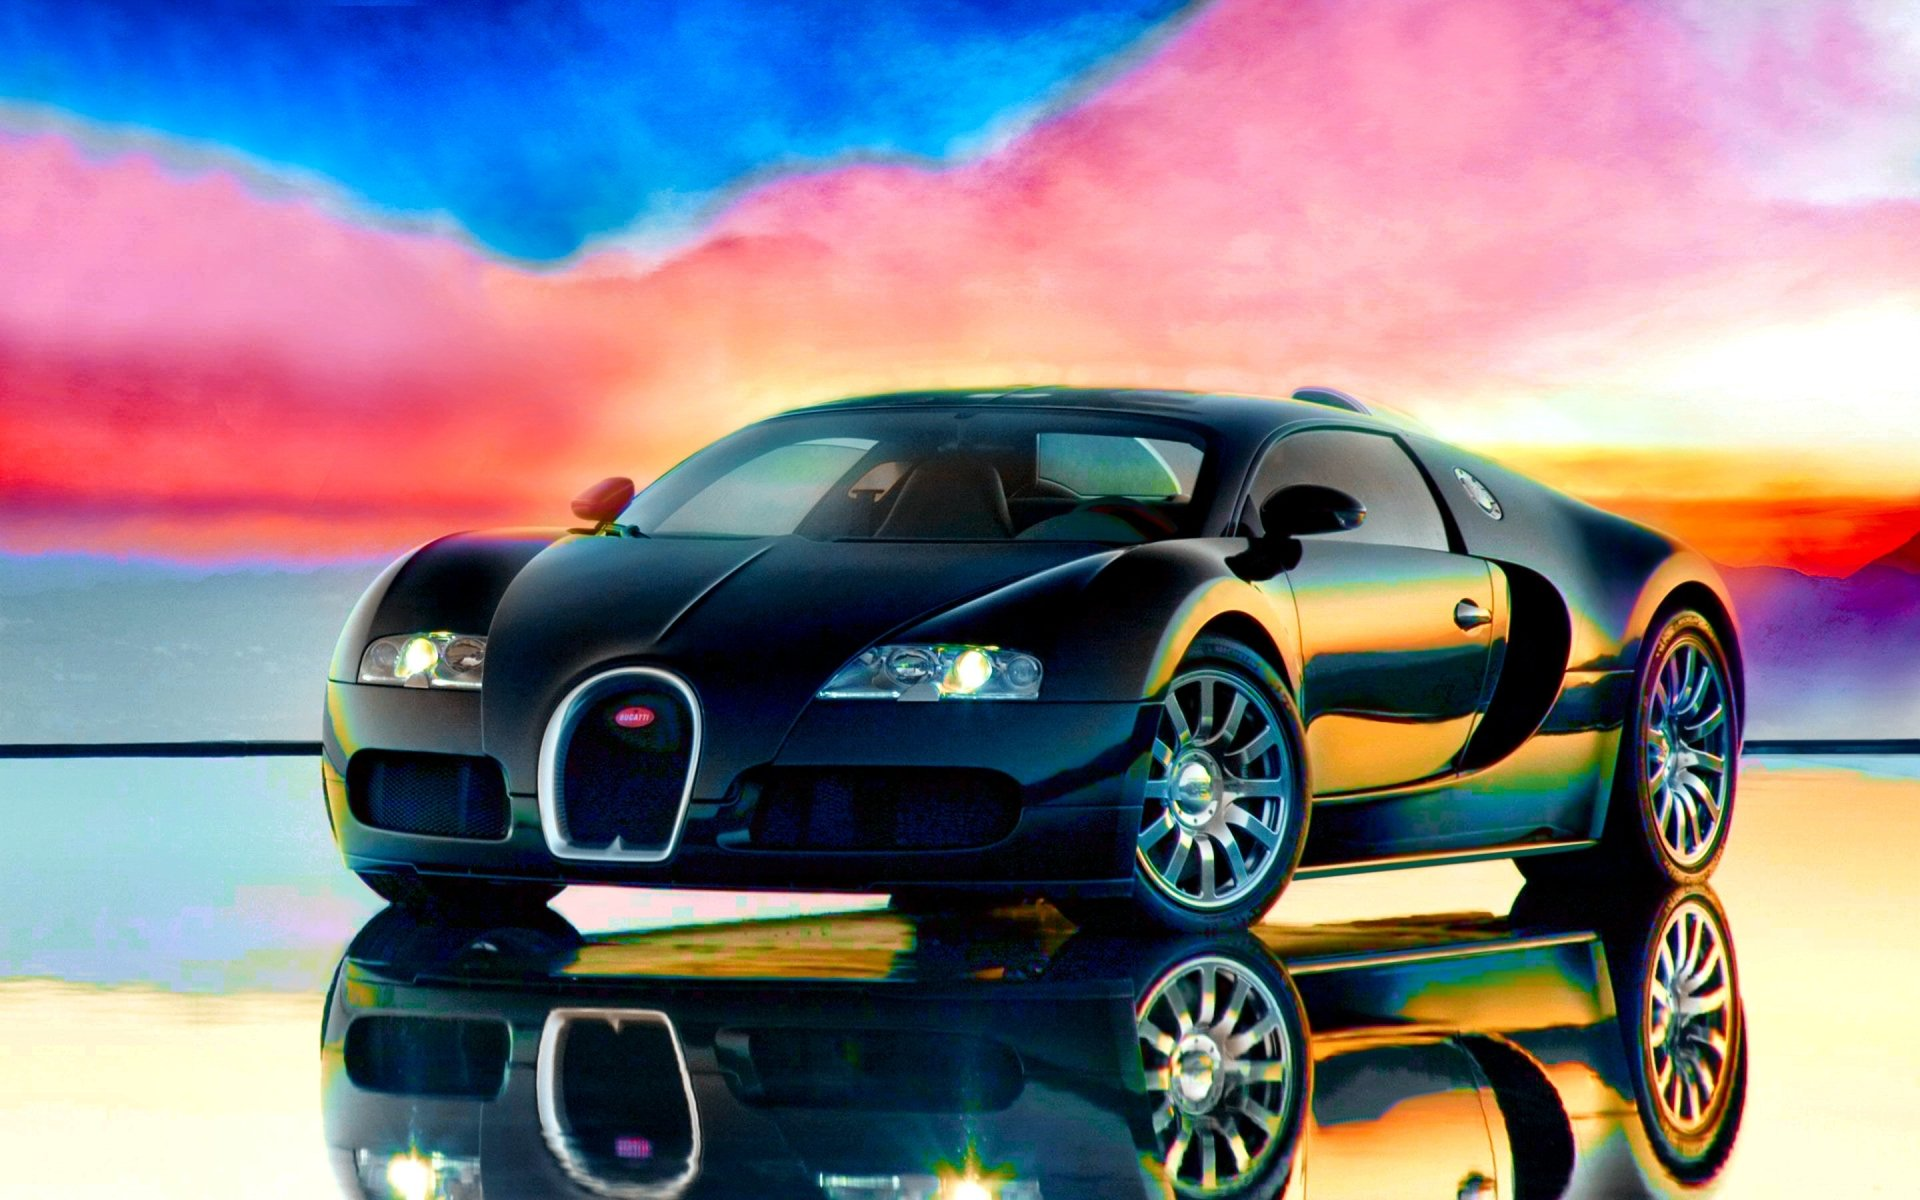 217 Bugatti Veyron Hd Wallpapers Background Images Wallpaper Abyss